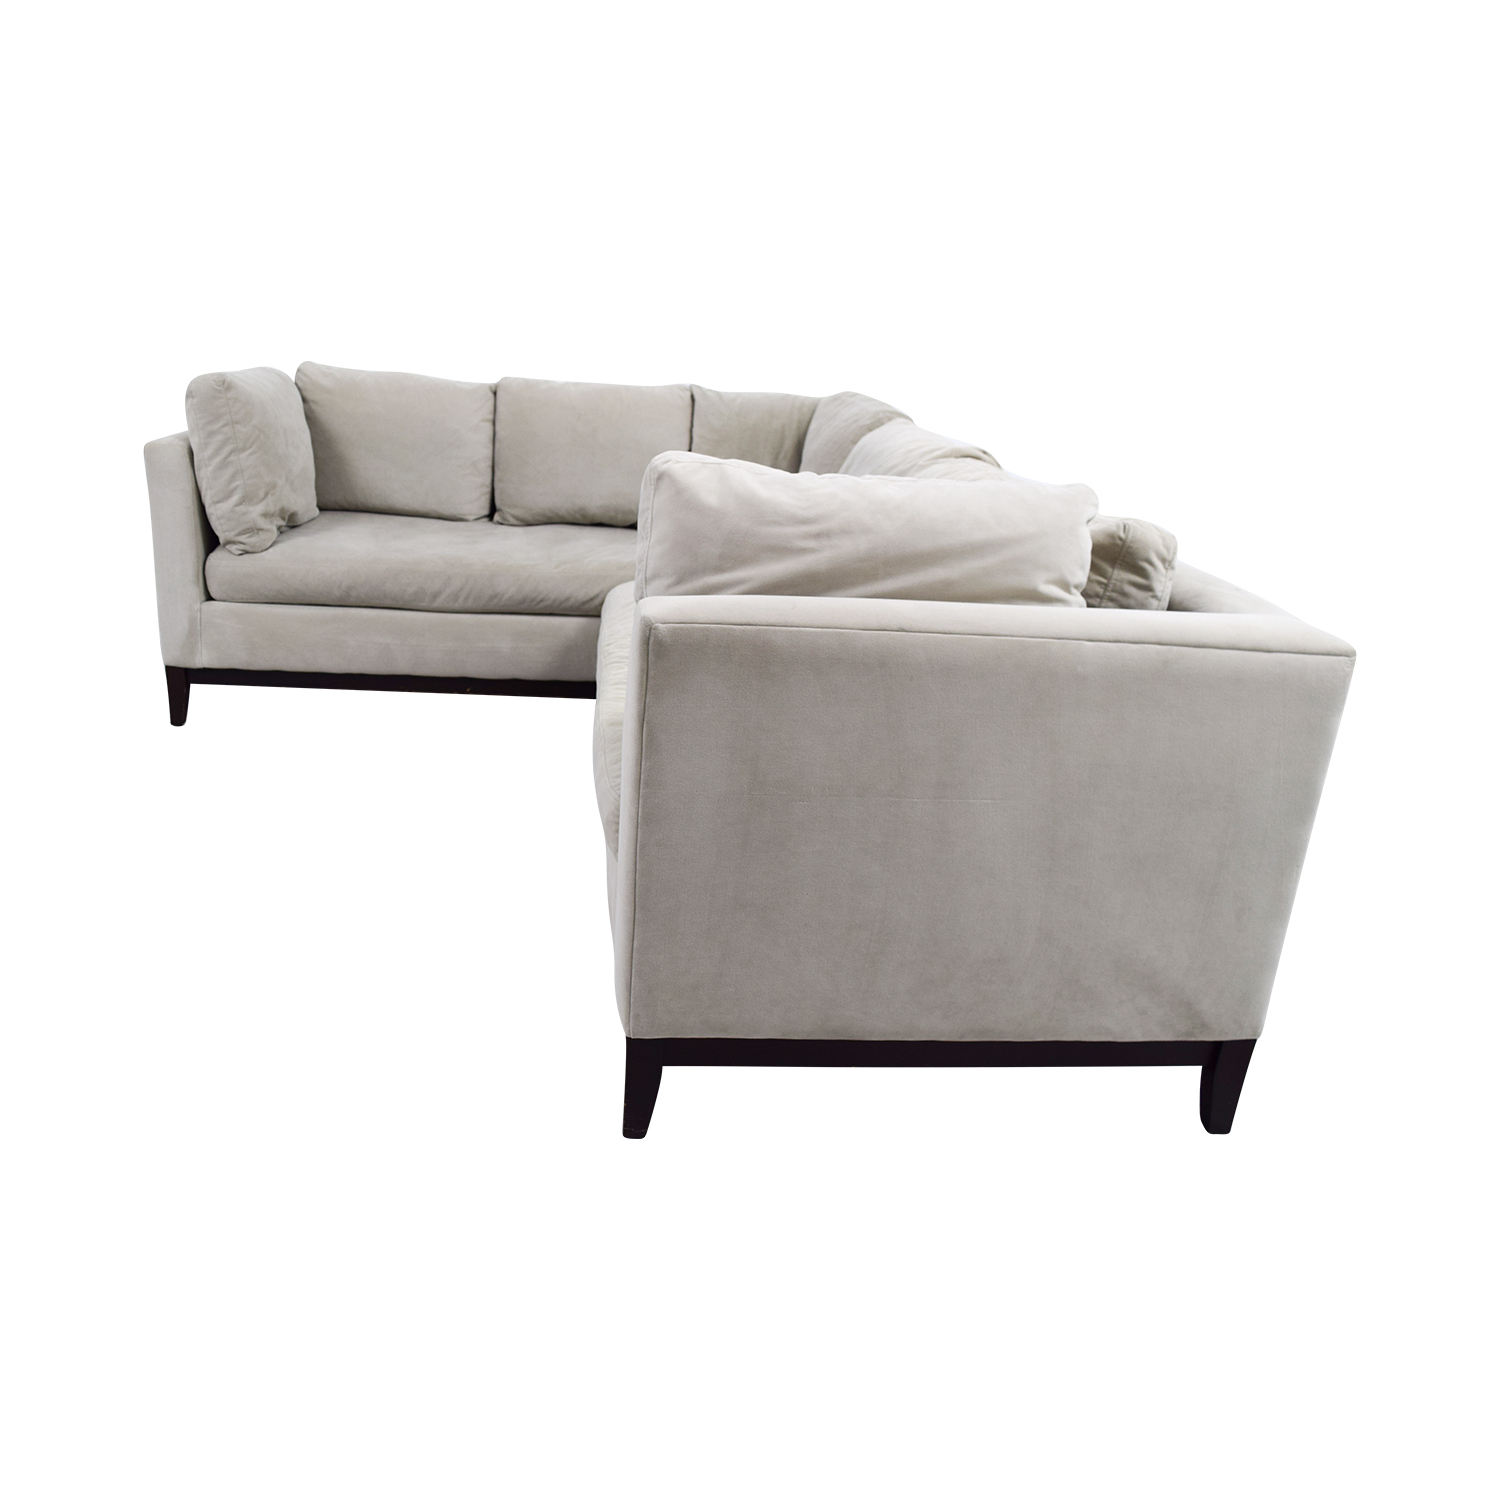 West Elm West Elm Beige L-Shaped Sectional dimensions